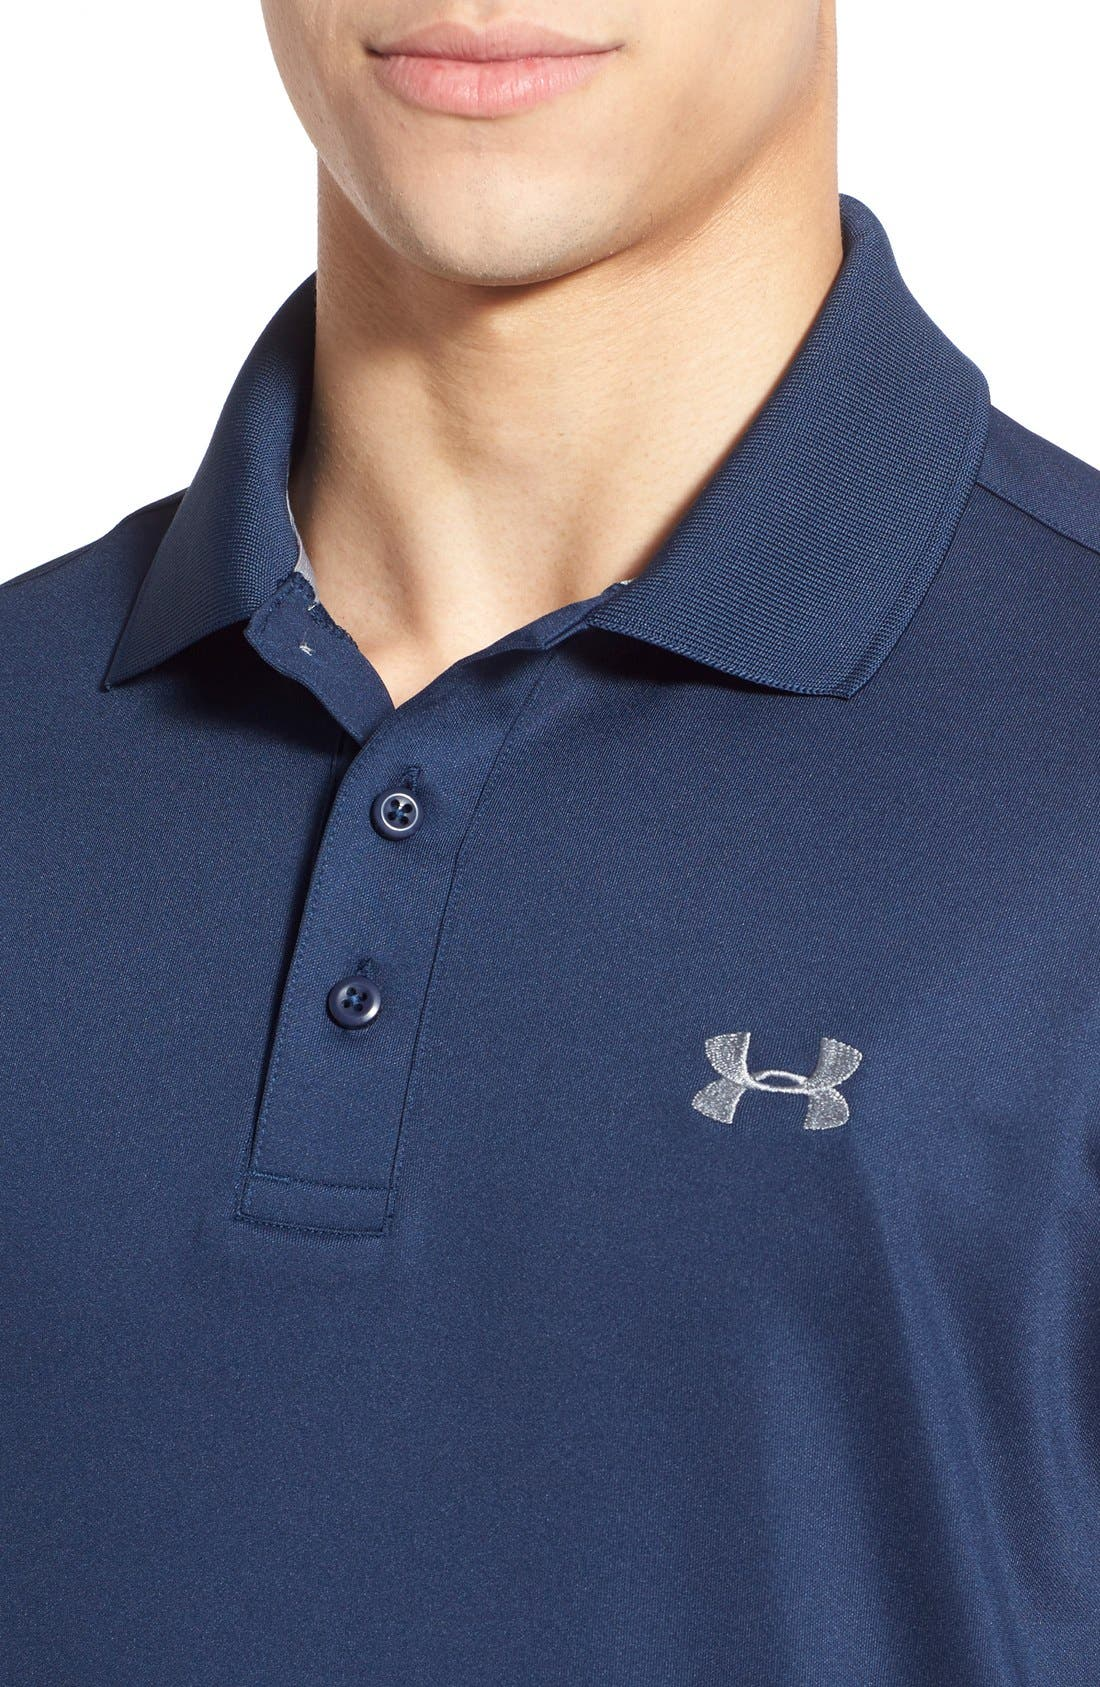 Alternate Image 4  - Under Armour 'Performance 2.0' Sweat Wicking Stretch Polo